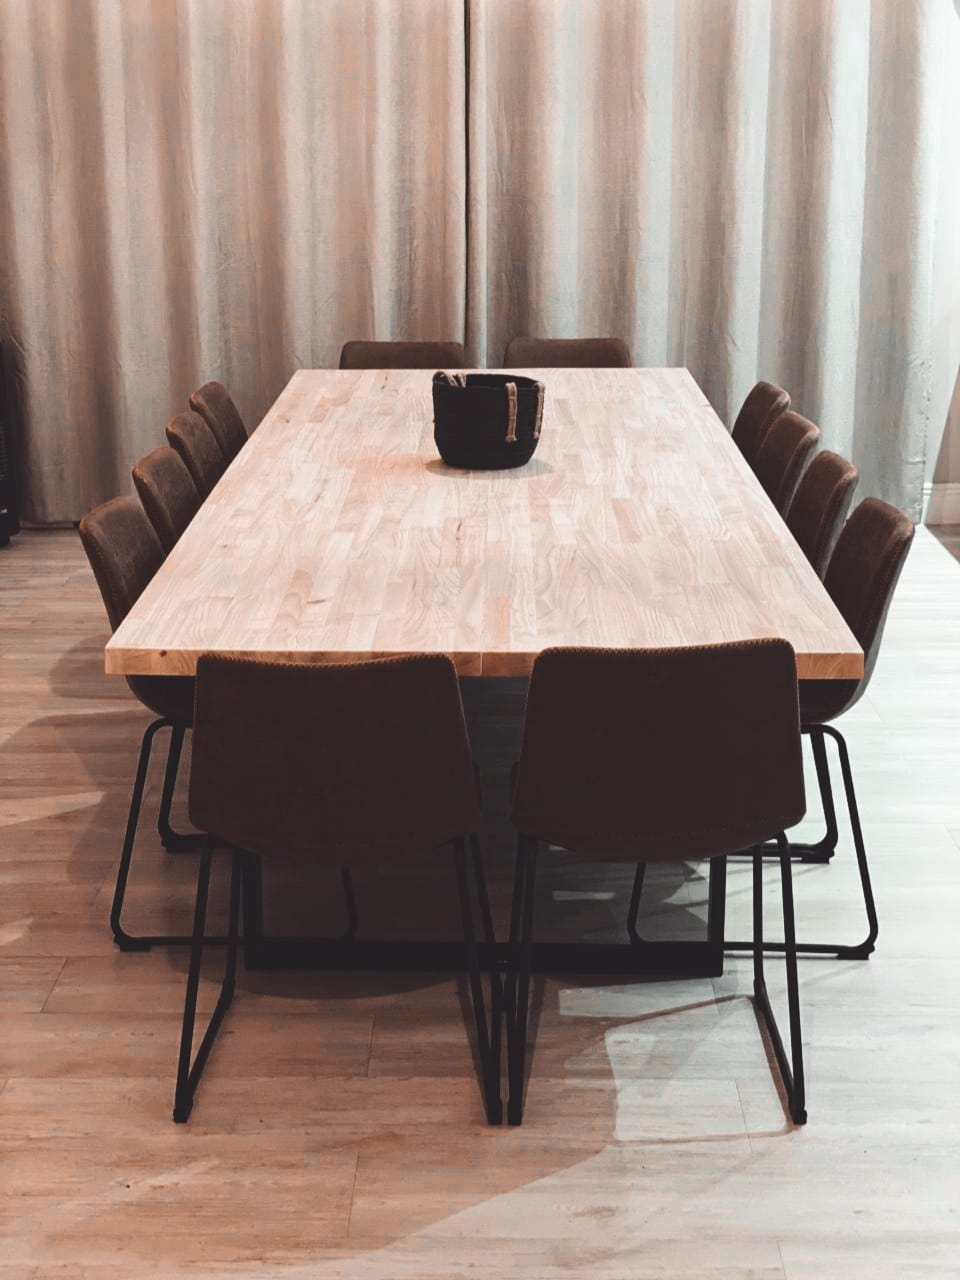 (Black Friday) Rubberwood Dining Table